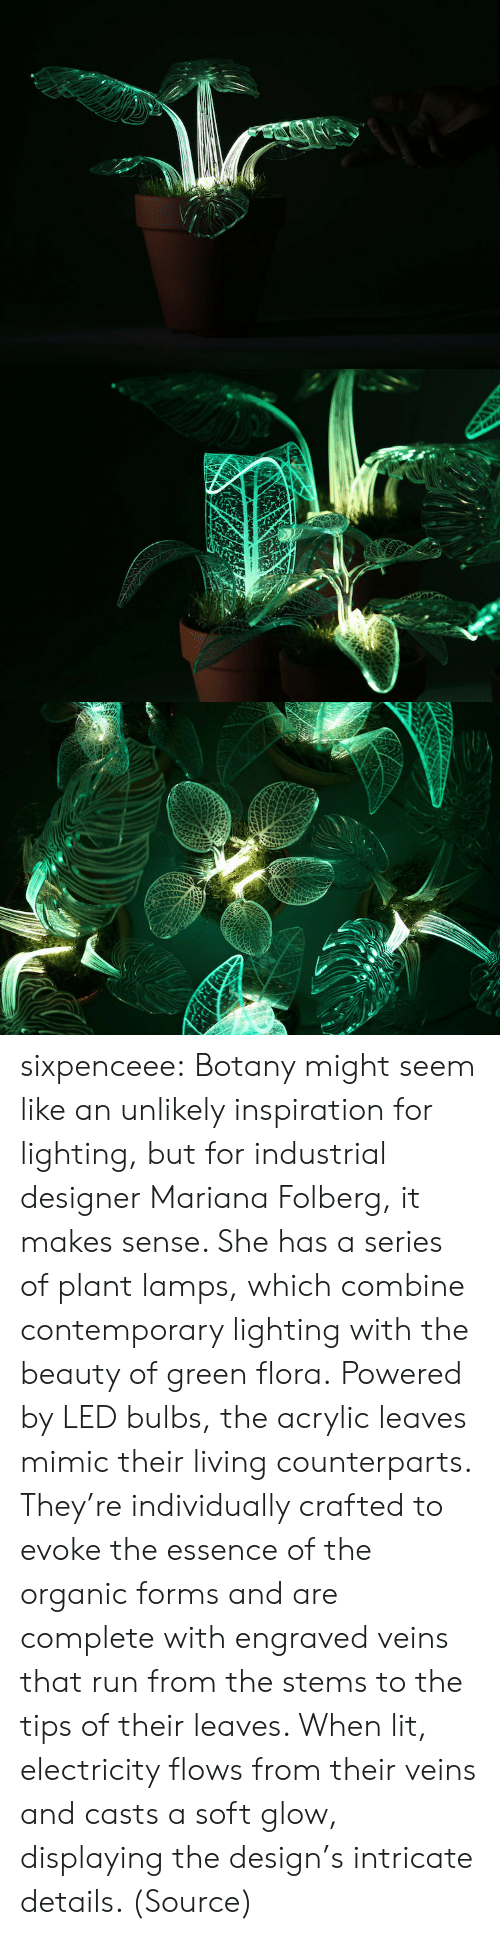 Mariana: sixpenceee:  Botany might seem like an unlikely inspiration for lighting, but for industrial designer Mariana Folberg, it makes sense. She has a series of plant lamps, which combine contemporary lighting with the beauty of green flora. Powered by LED bulbs, the acrylic leaves mimic their living counterparts. They're individually crafted to evoke the essence of the organic forms and are complete with engraved veins that run from the stems to the tips of their leaves. When lit, electricity flows from their veins and casts a soft glow, displaying the design's intricate details. (Source)